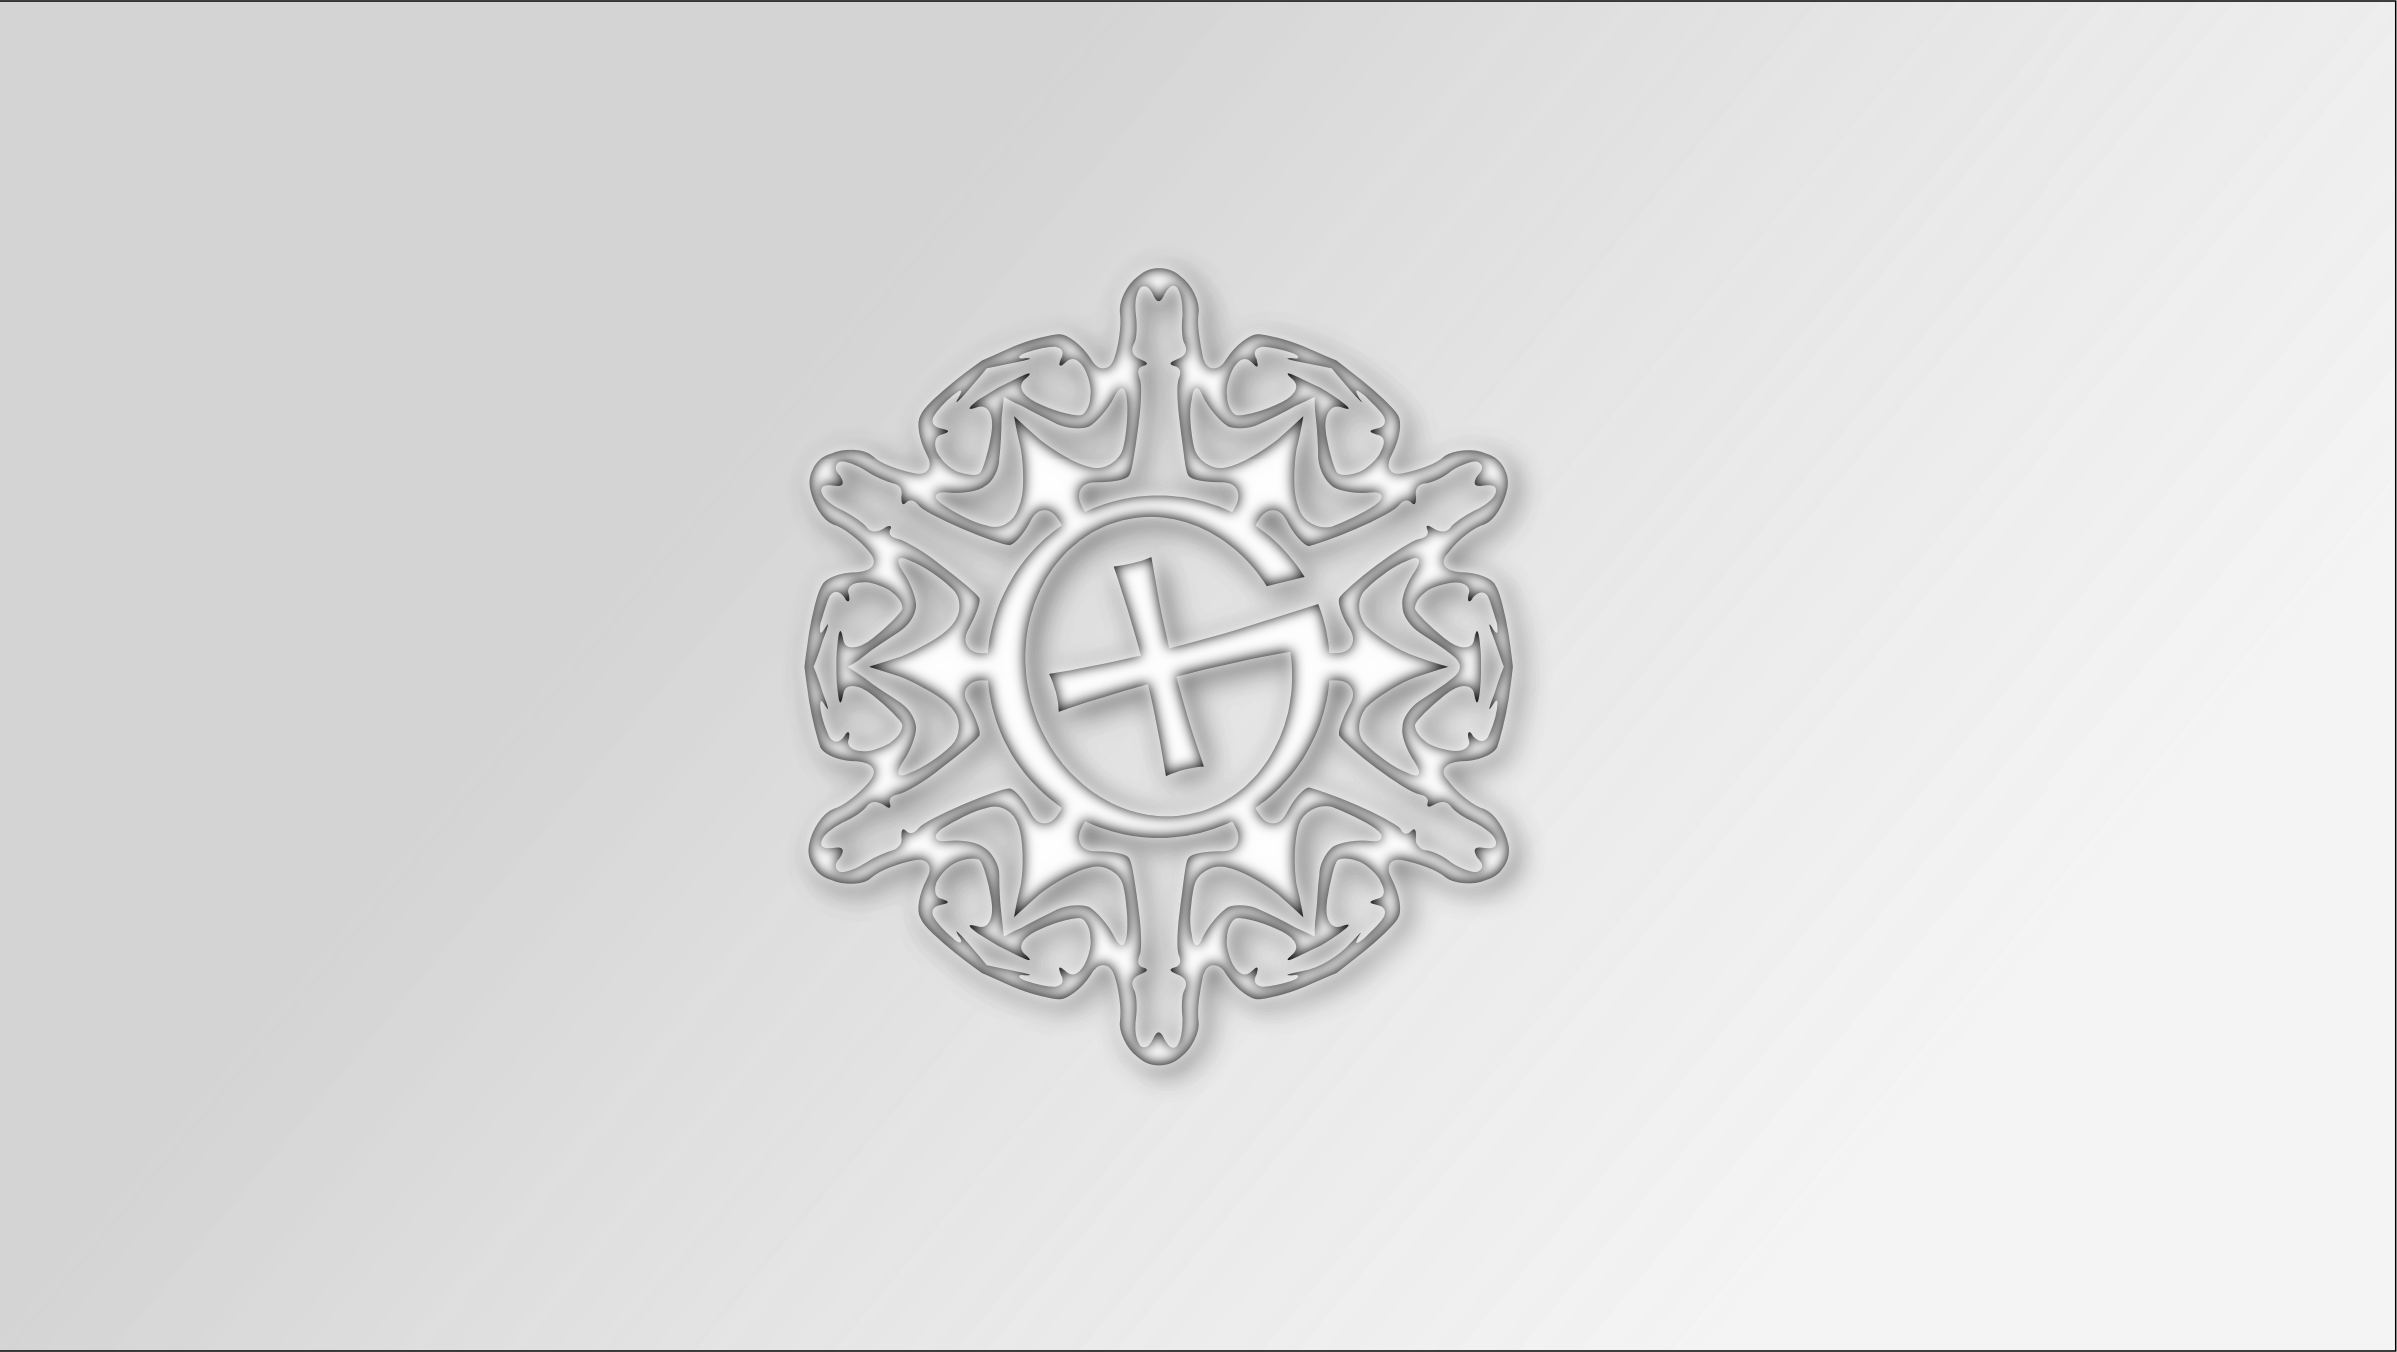 Snowflake geocaching wallpaper by ftfshop.eu